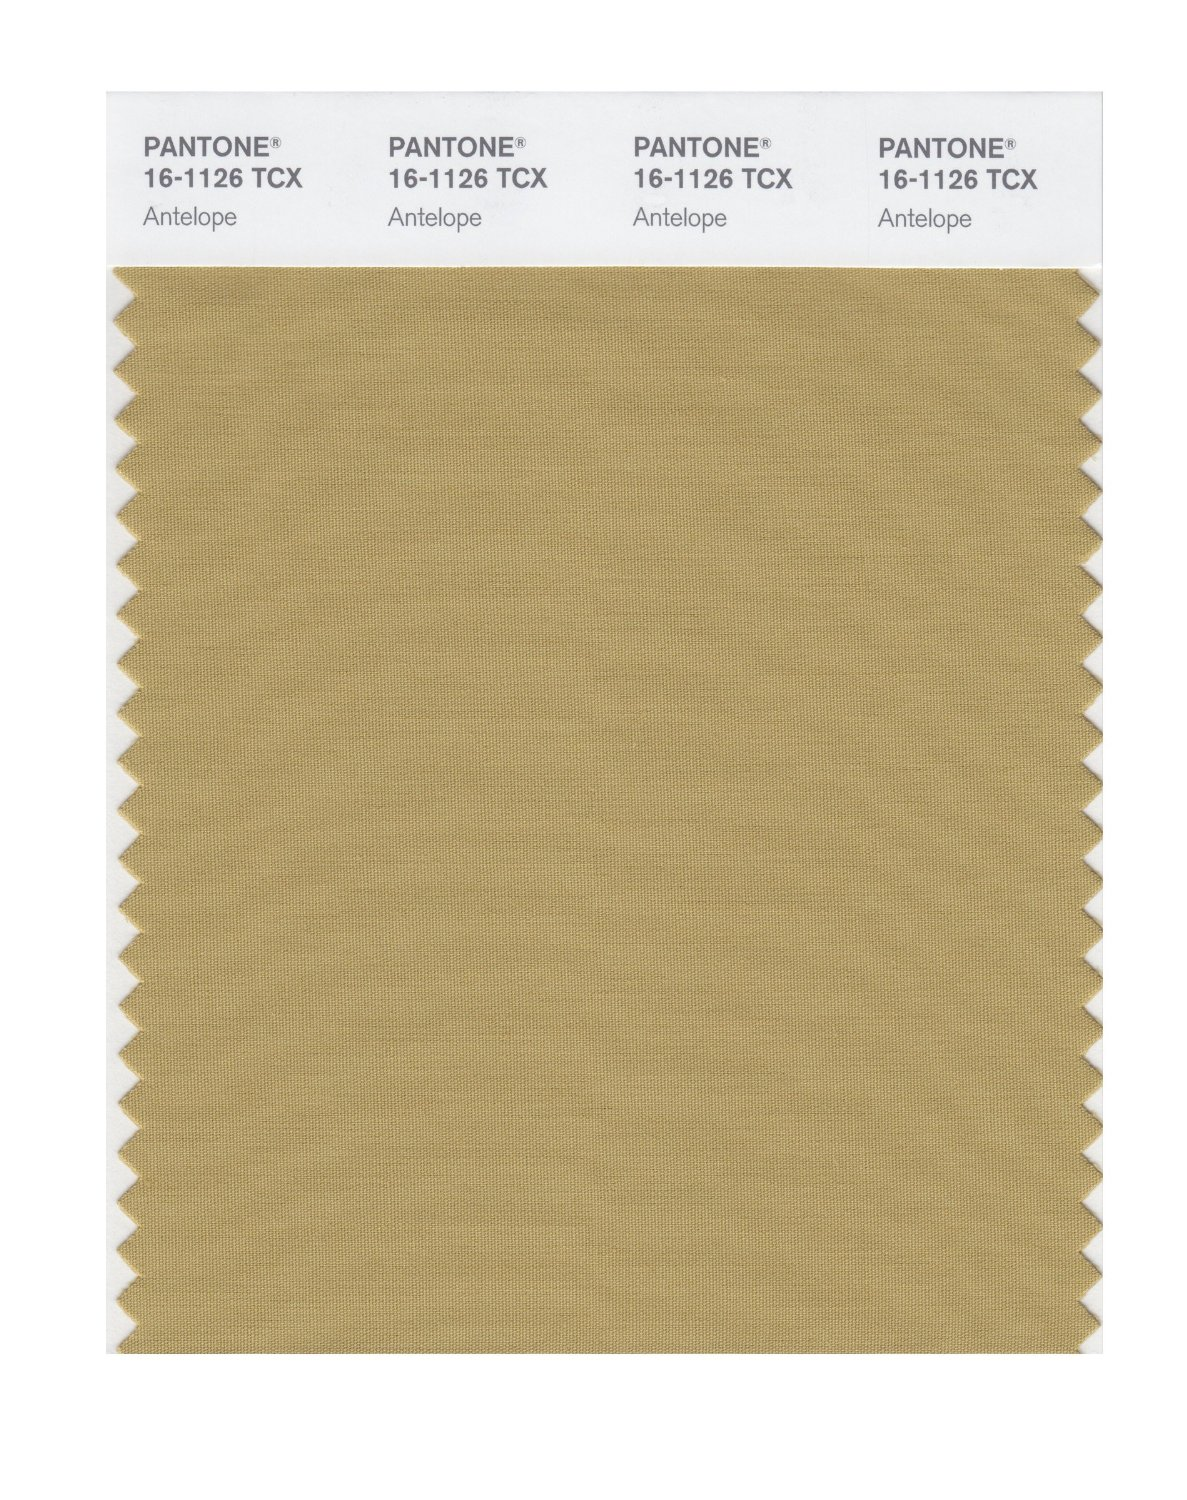 Pantone Smart Swatch 16-1126 Antelope